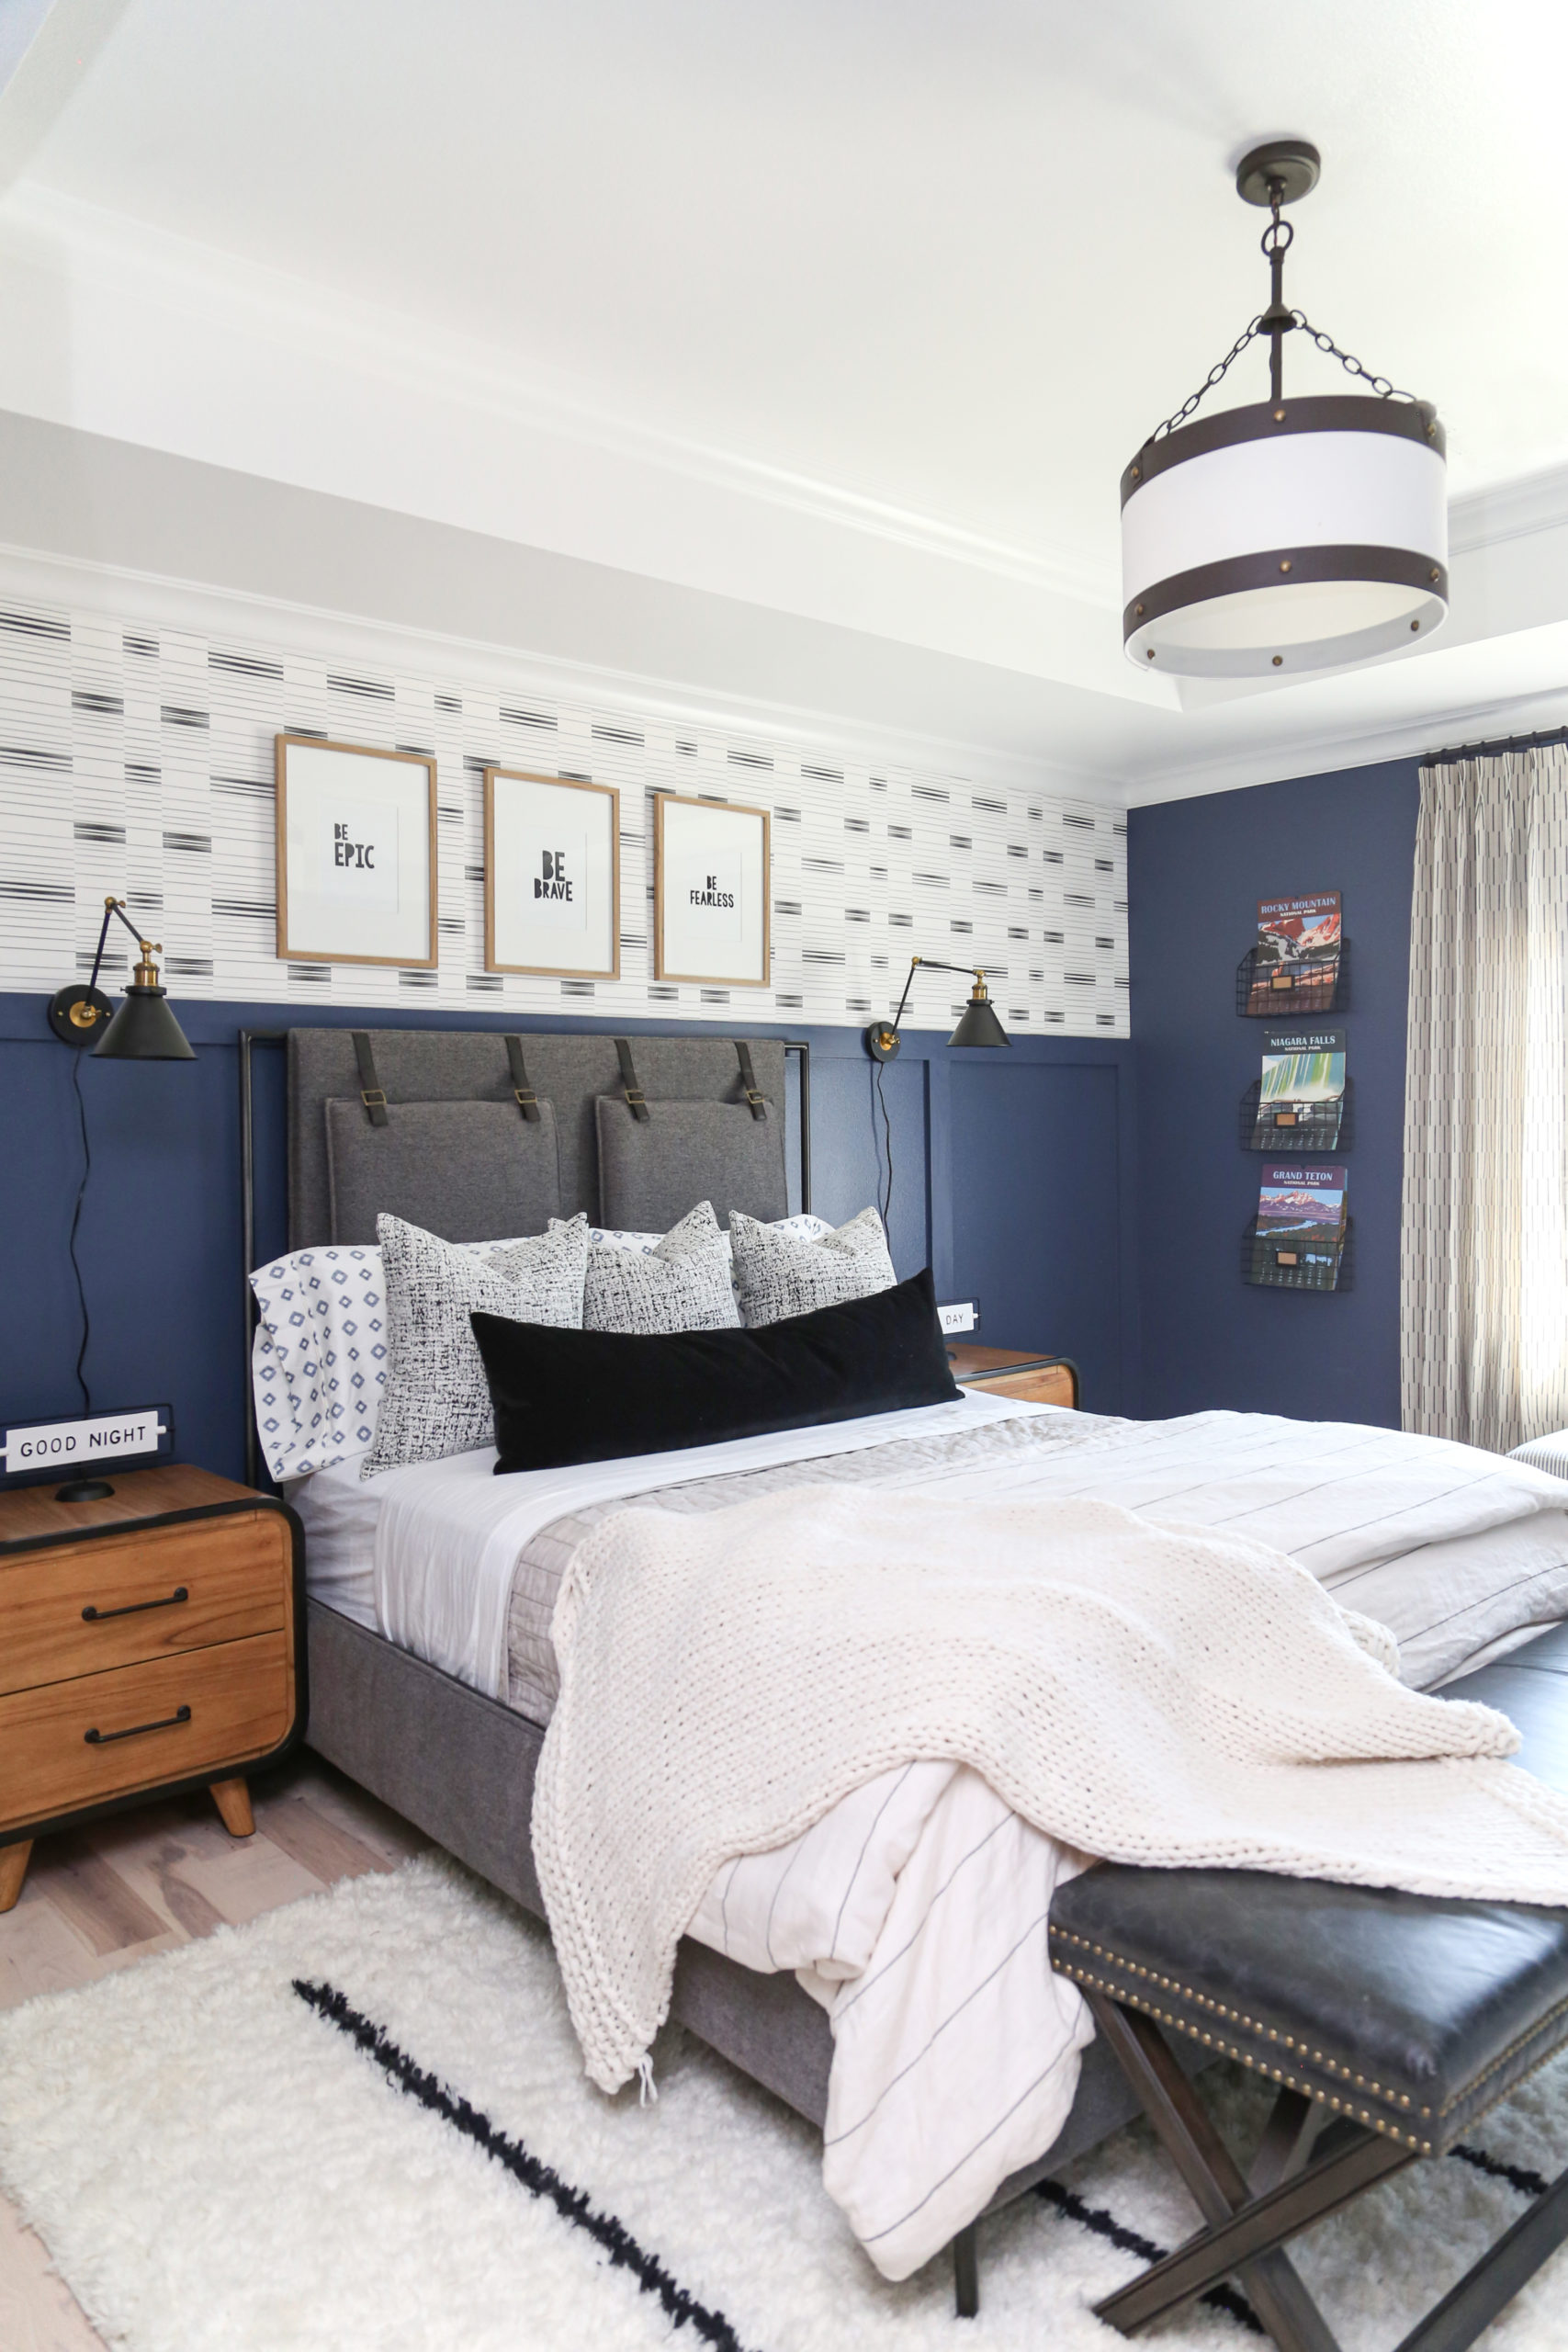 How to Plan a Teen Boy Bedroom He Will Love